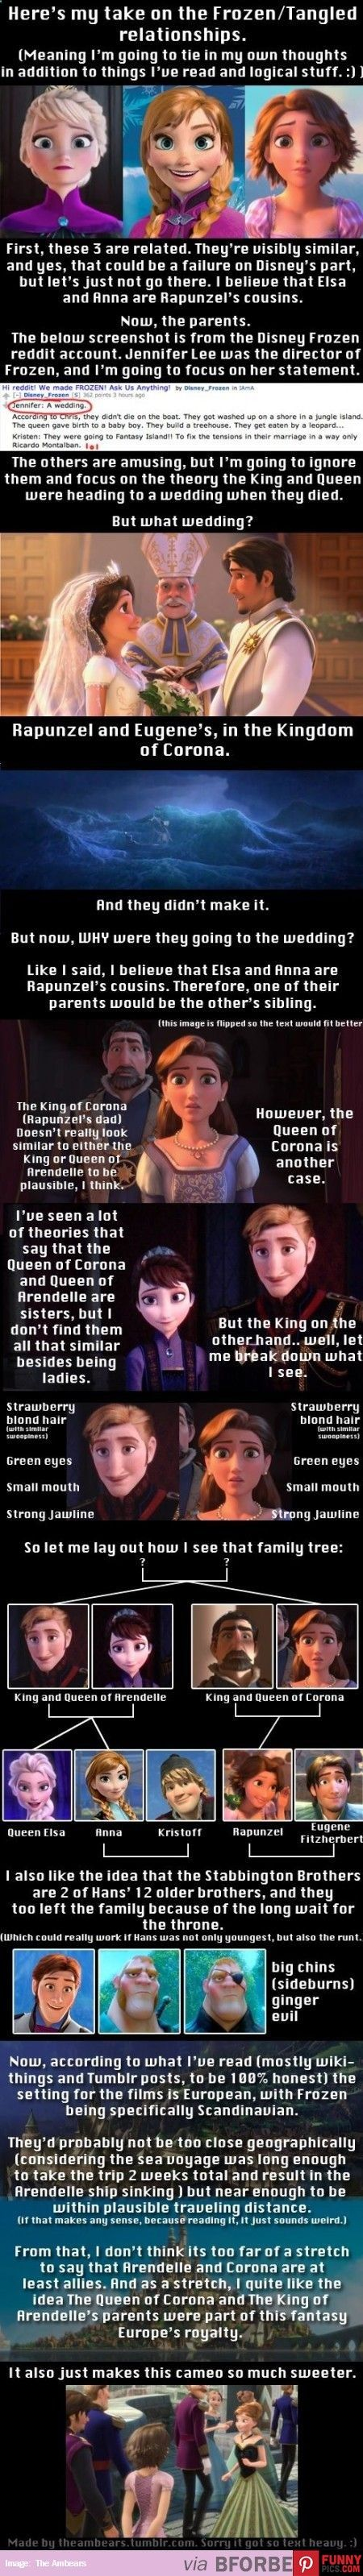 Also if all the ice melted in arendelle when elsa unthawed her heart.  Then wouldn't else's ice castle melt too?